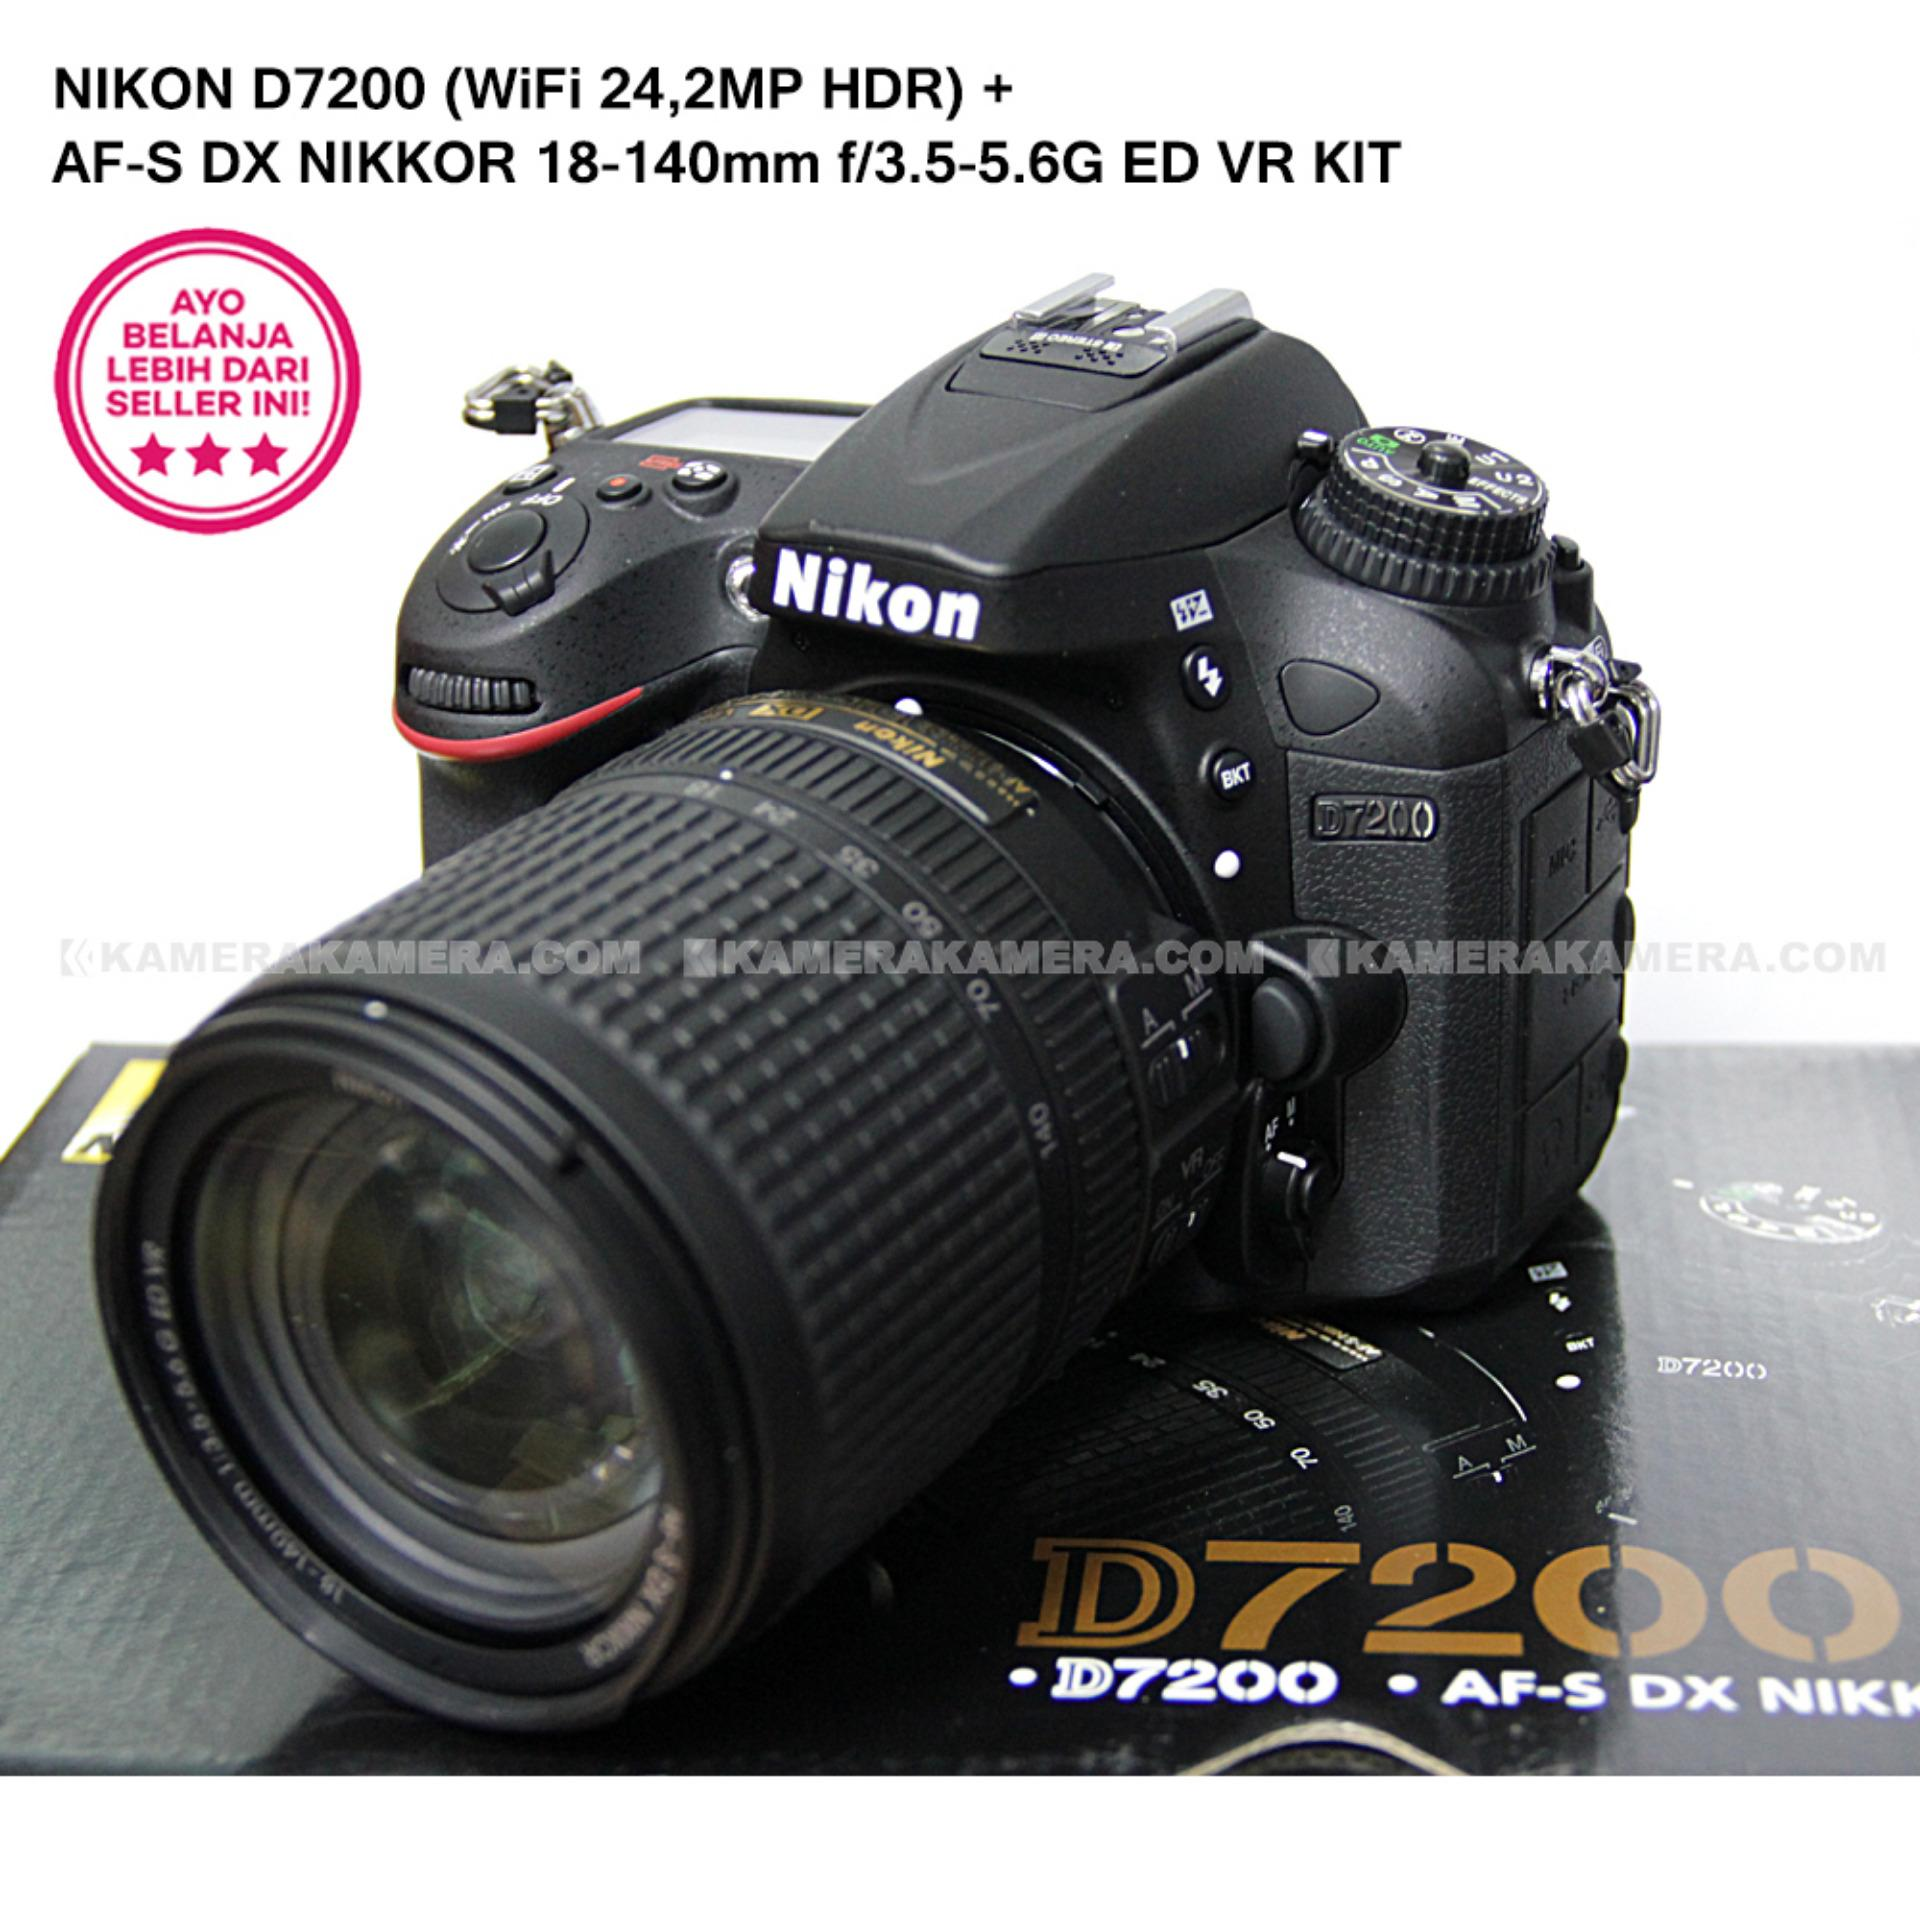 Harga Nikon D7200 Wifi 24 2Mp Hdr Af S Dx Nikkor 18 140Mm F 3 5 5 6G Ed Vr Kit Online